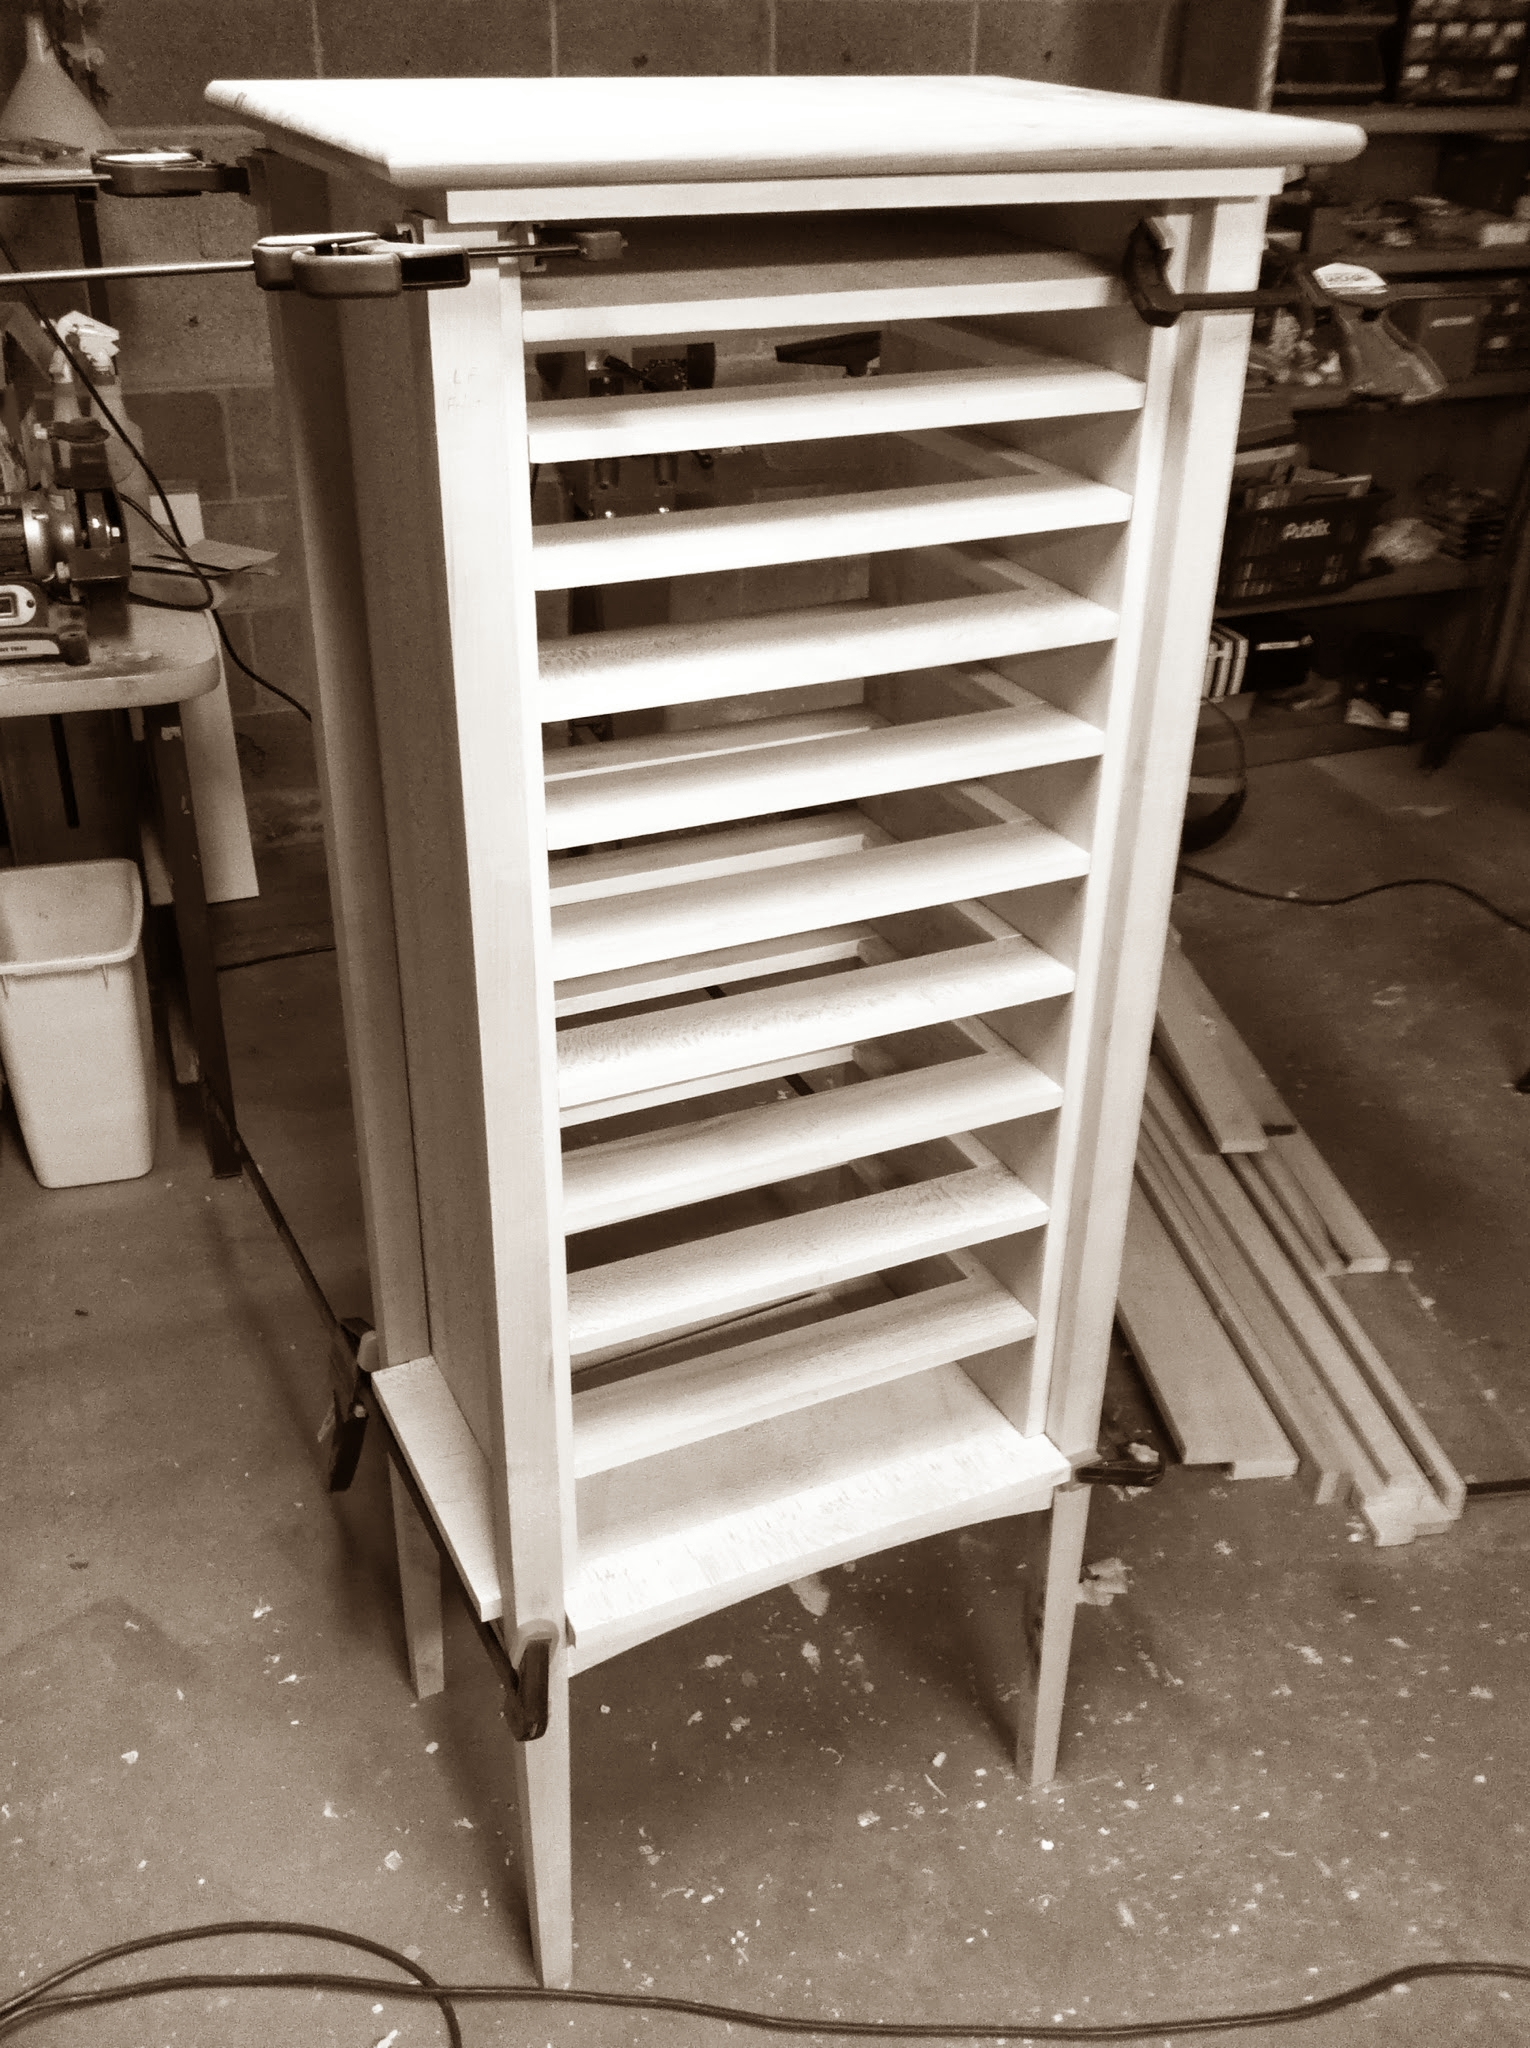 Adri's Cabinet: Final dry fit of the cabinet case, with web frame installed